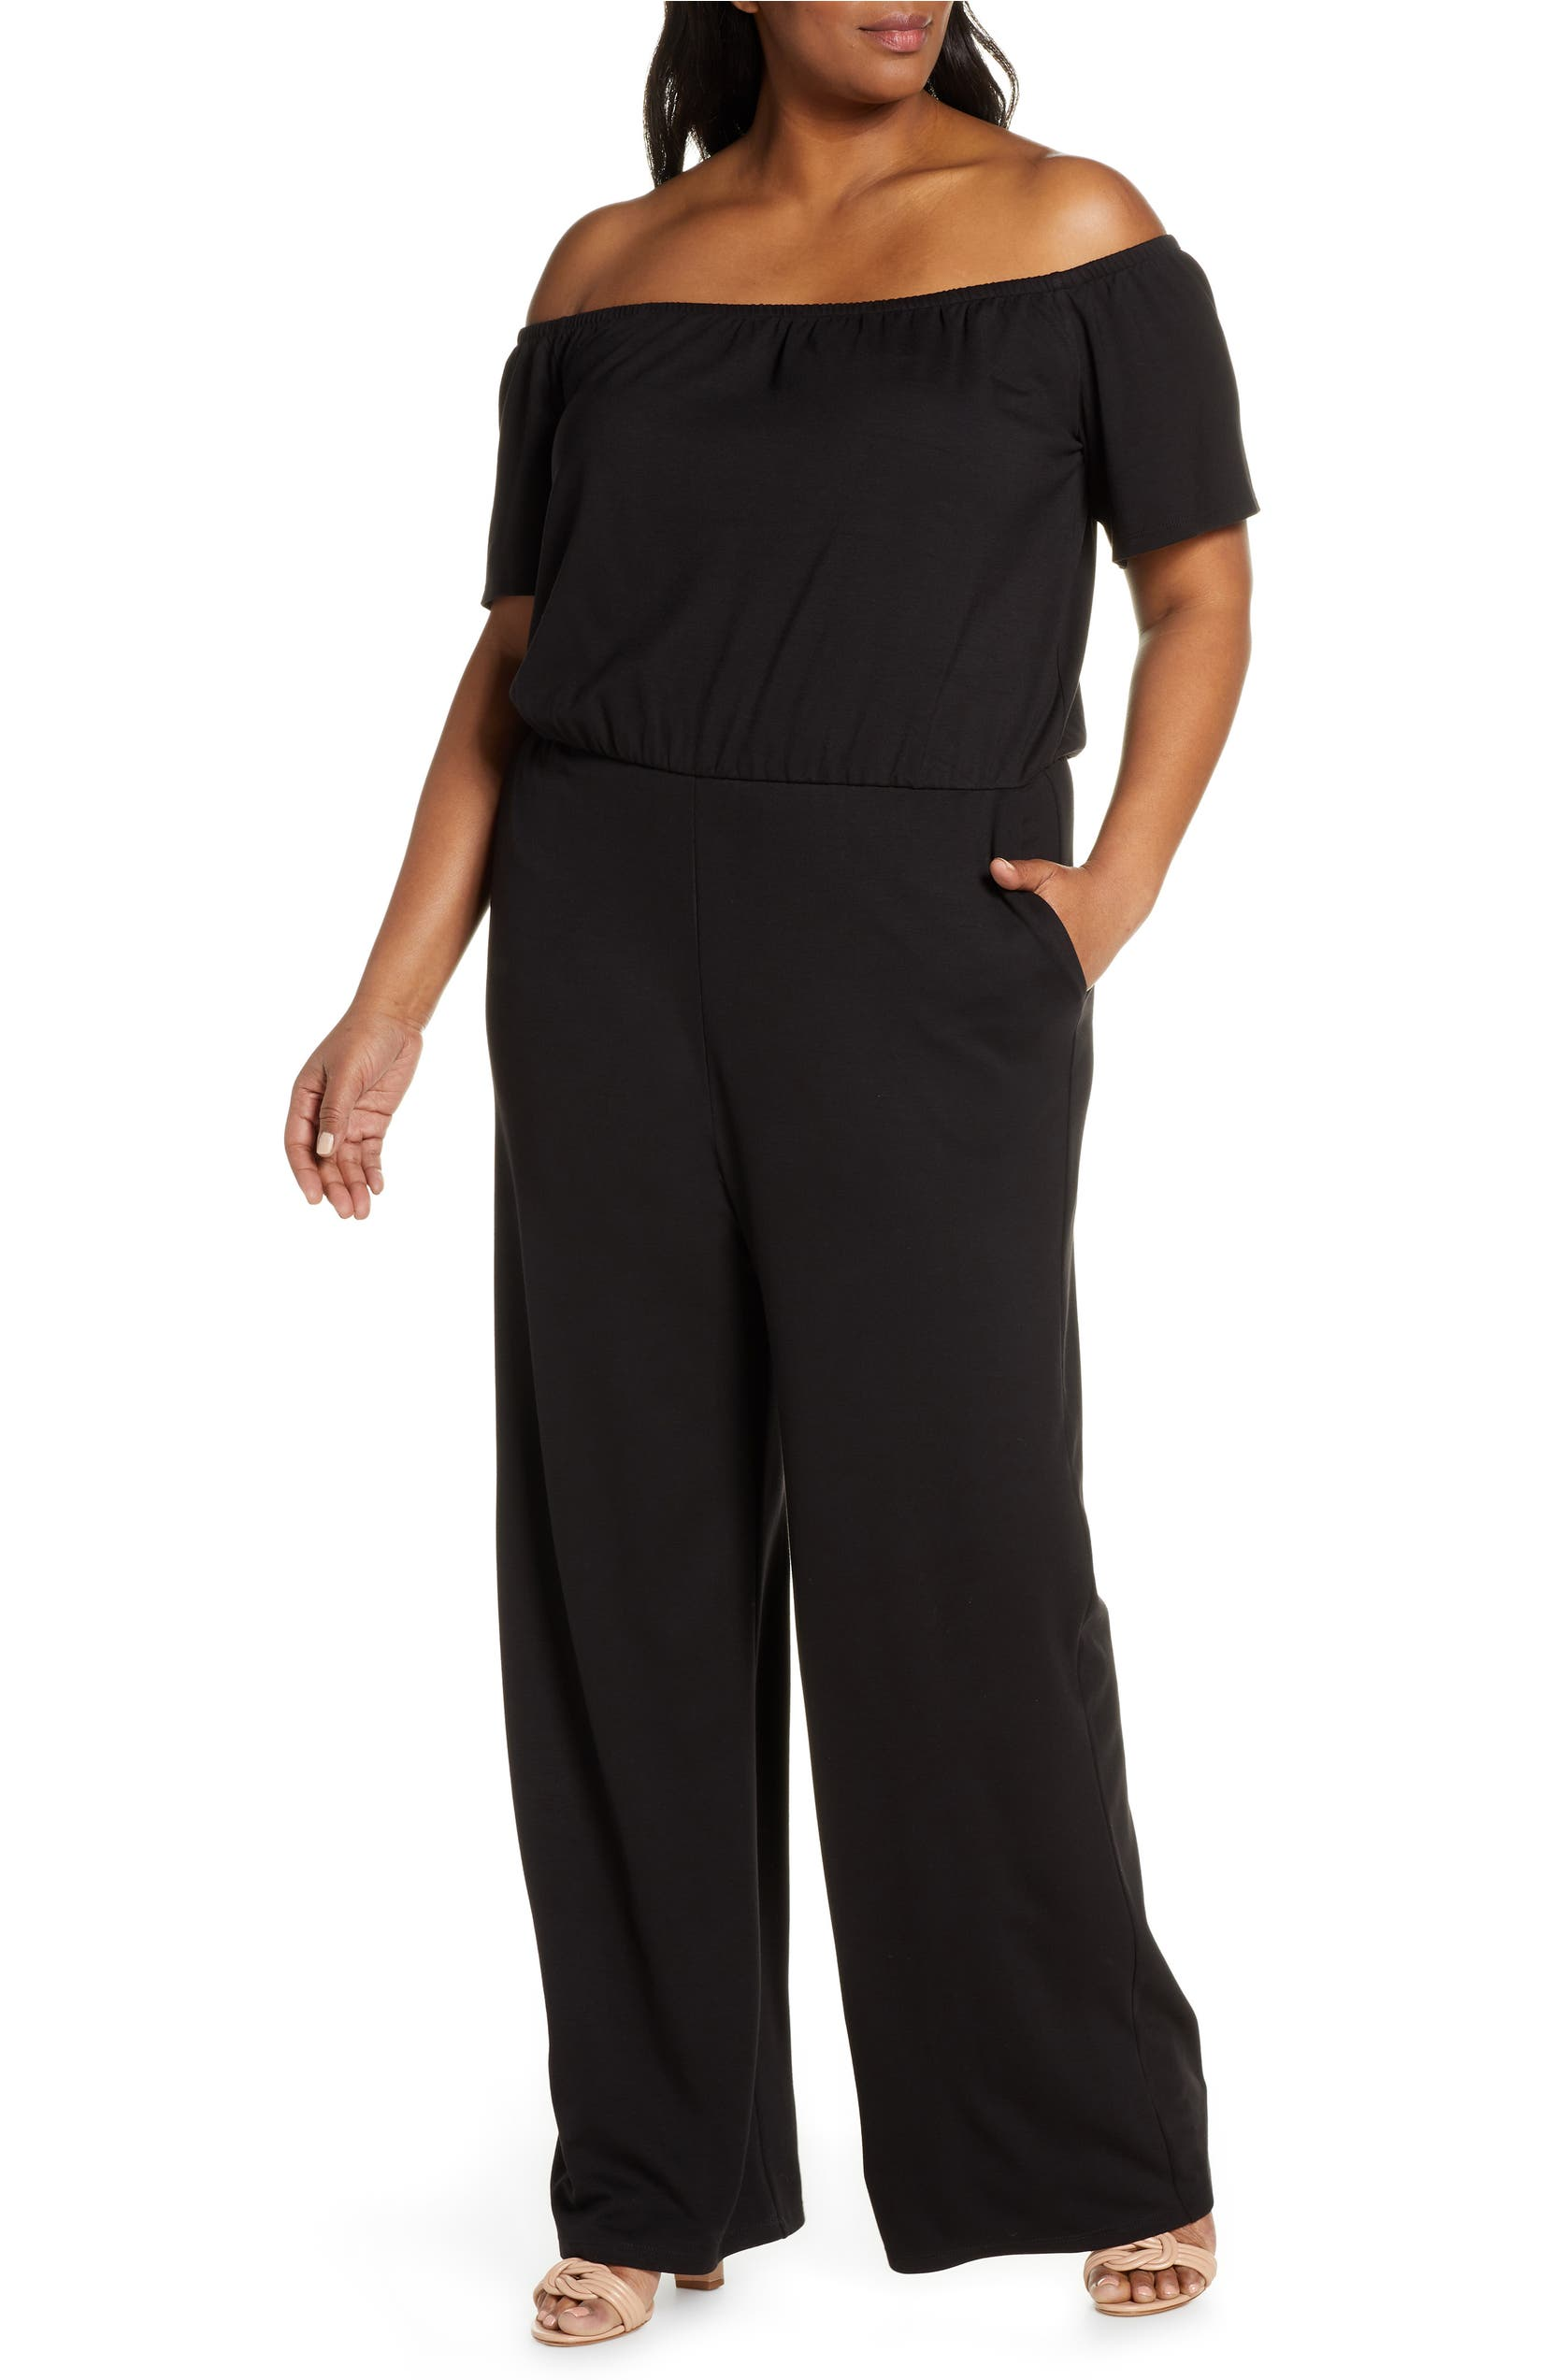 2b820eebd3 Gibson x Living in Yellow Iris Off the Shoulder Ponte Knit Jumpsuit (Plus  Size) (Nordstrom Exclusive) | Nordstrom